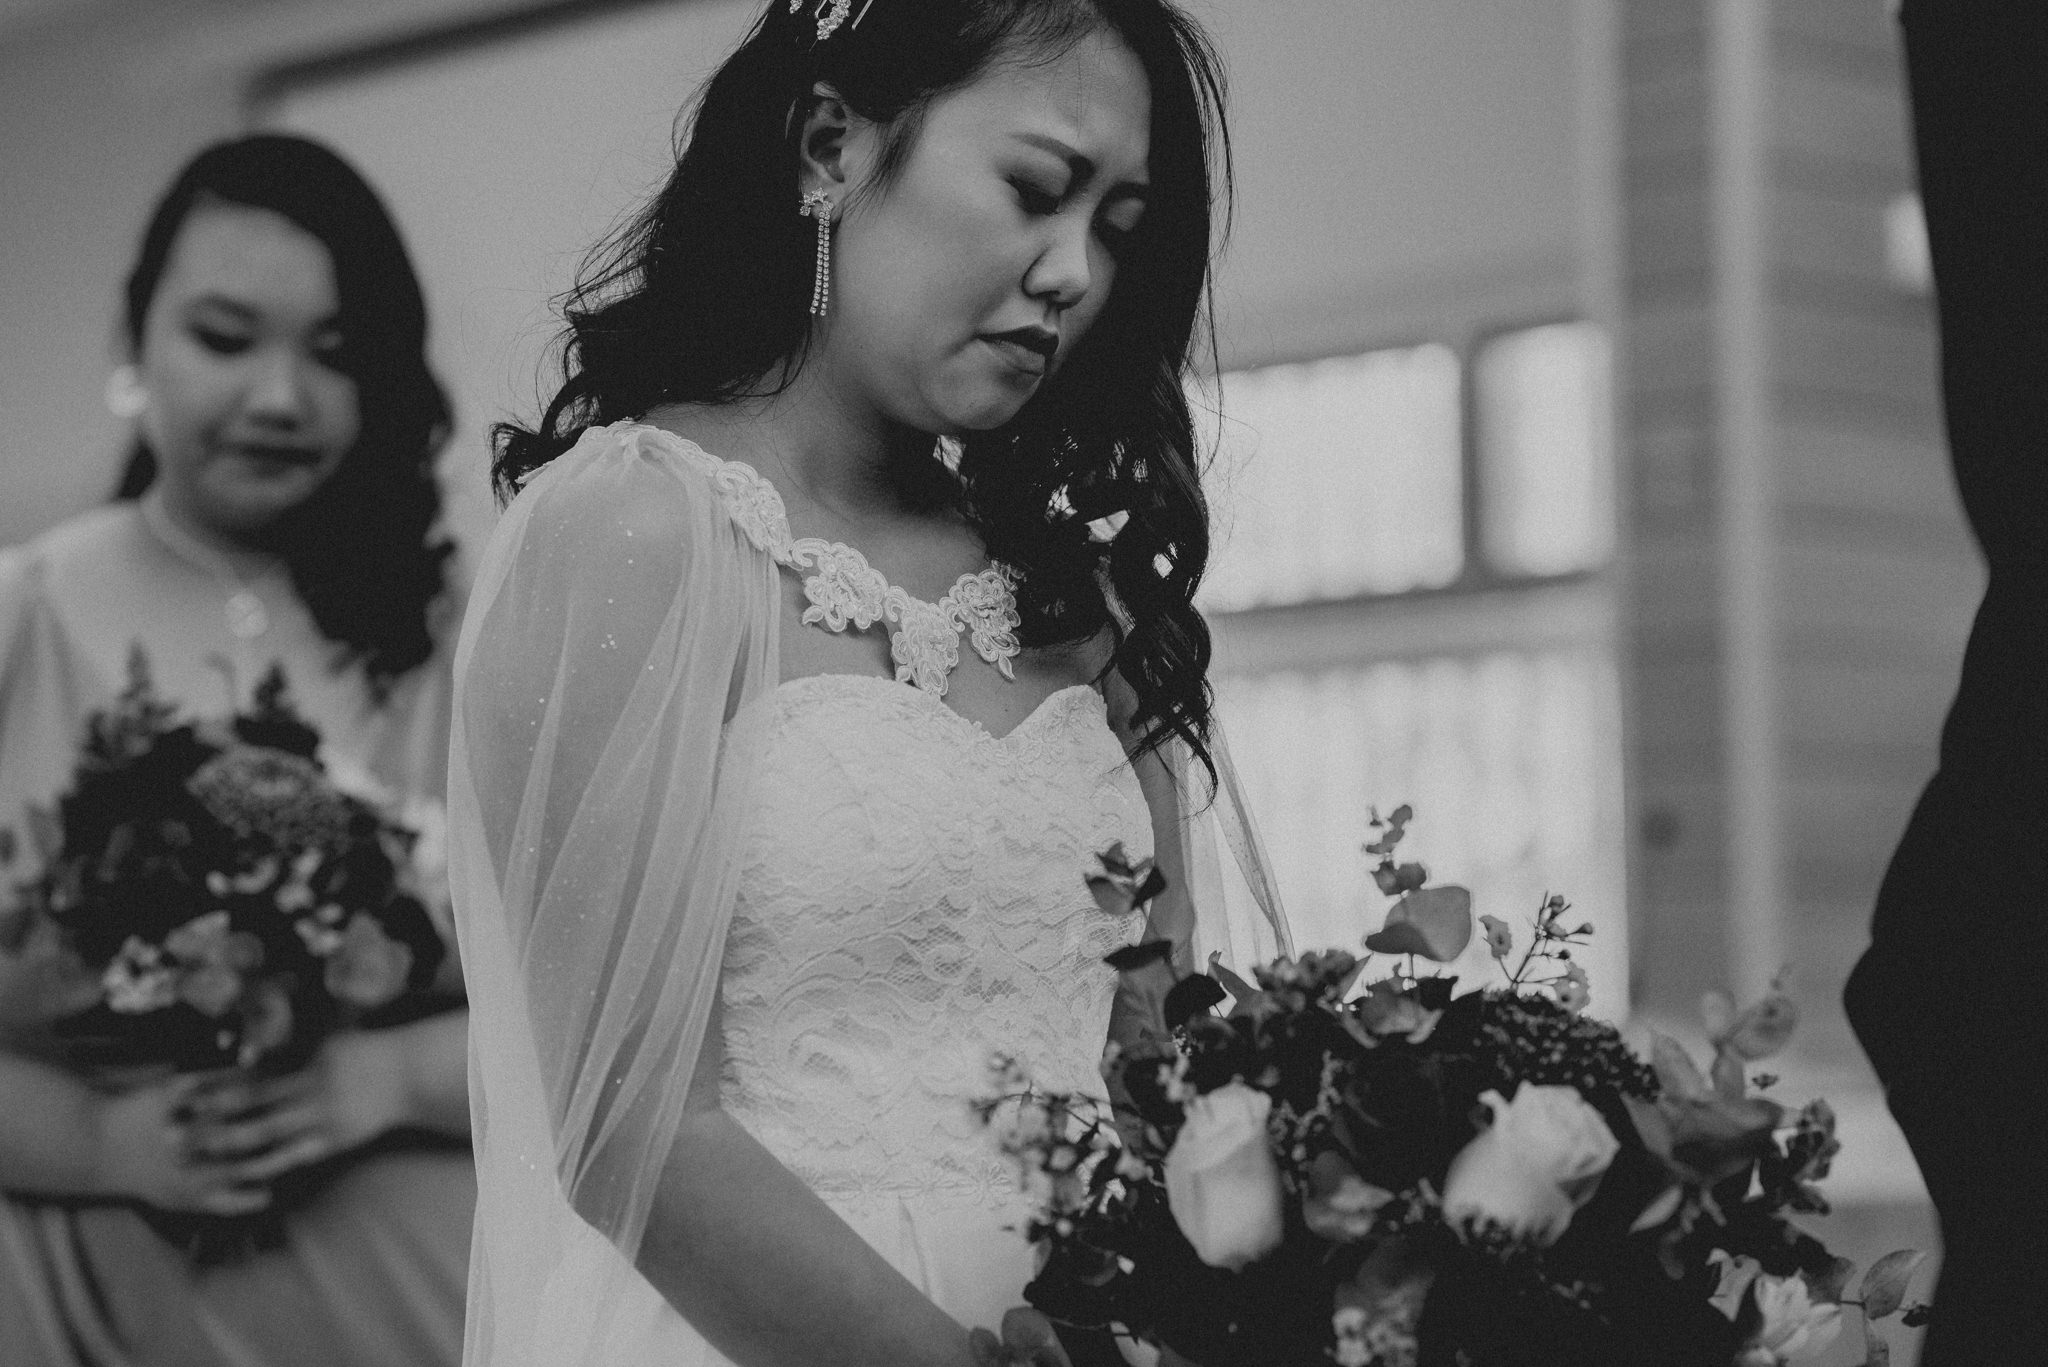 An asian bride closes her eyes and bows her head during her wedding ceremony